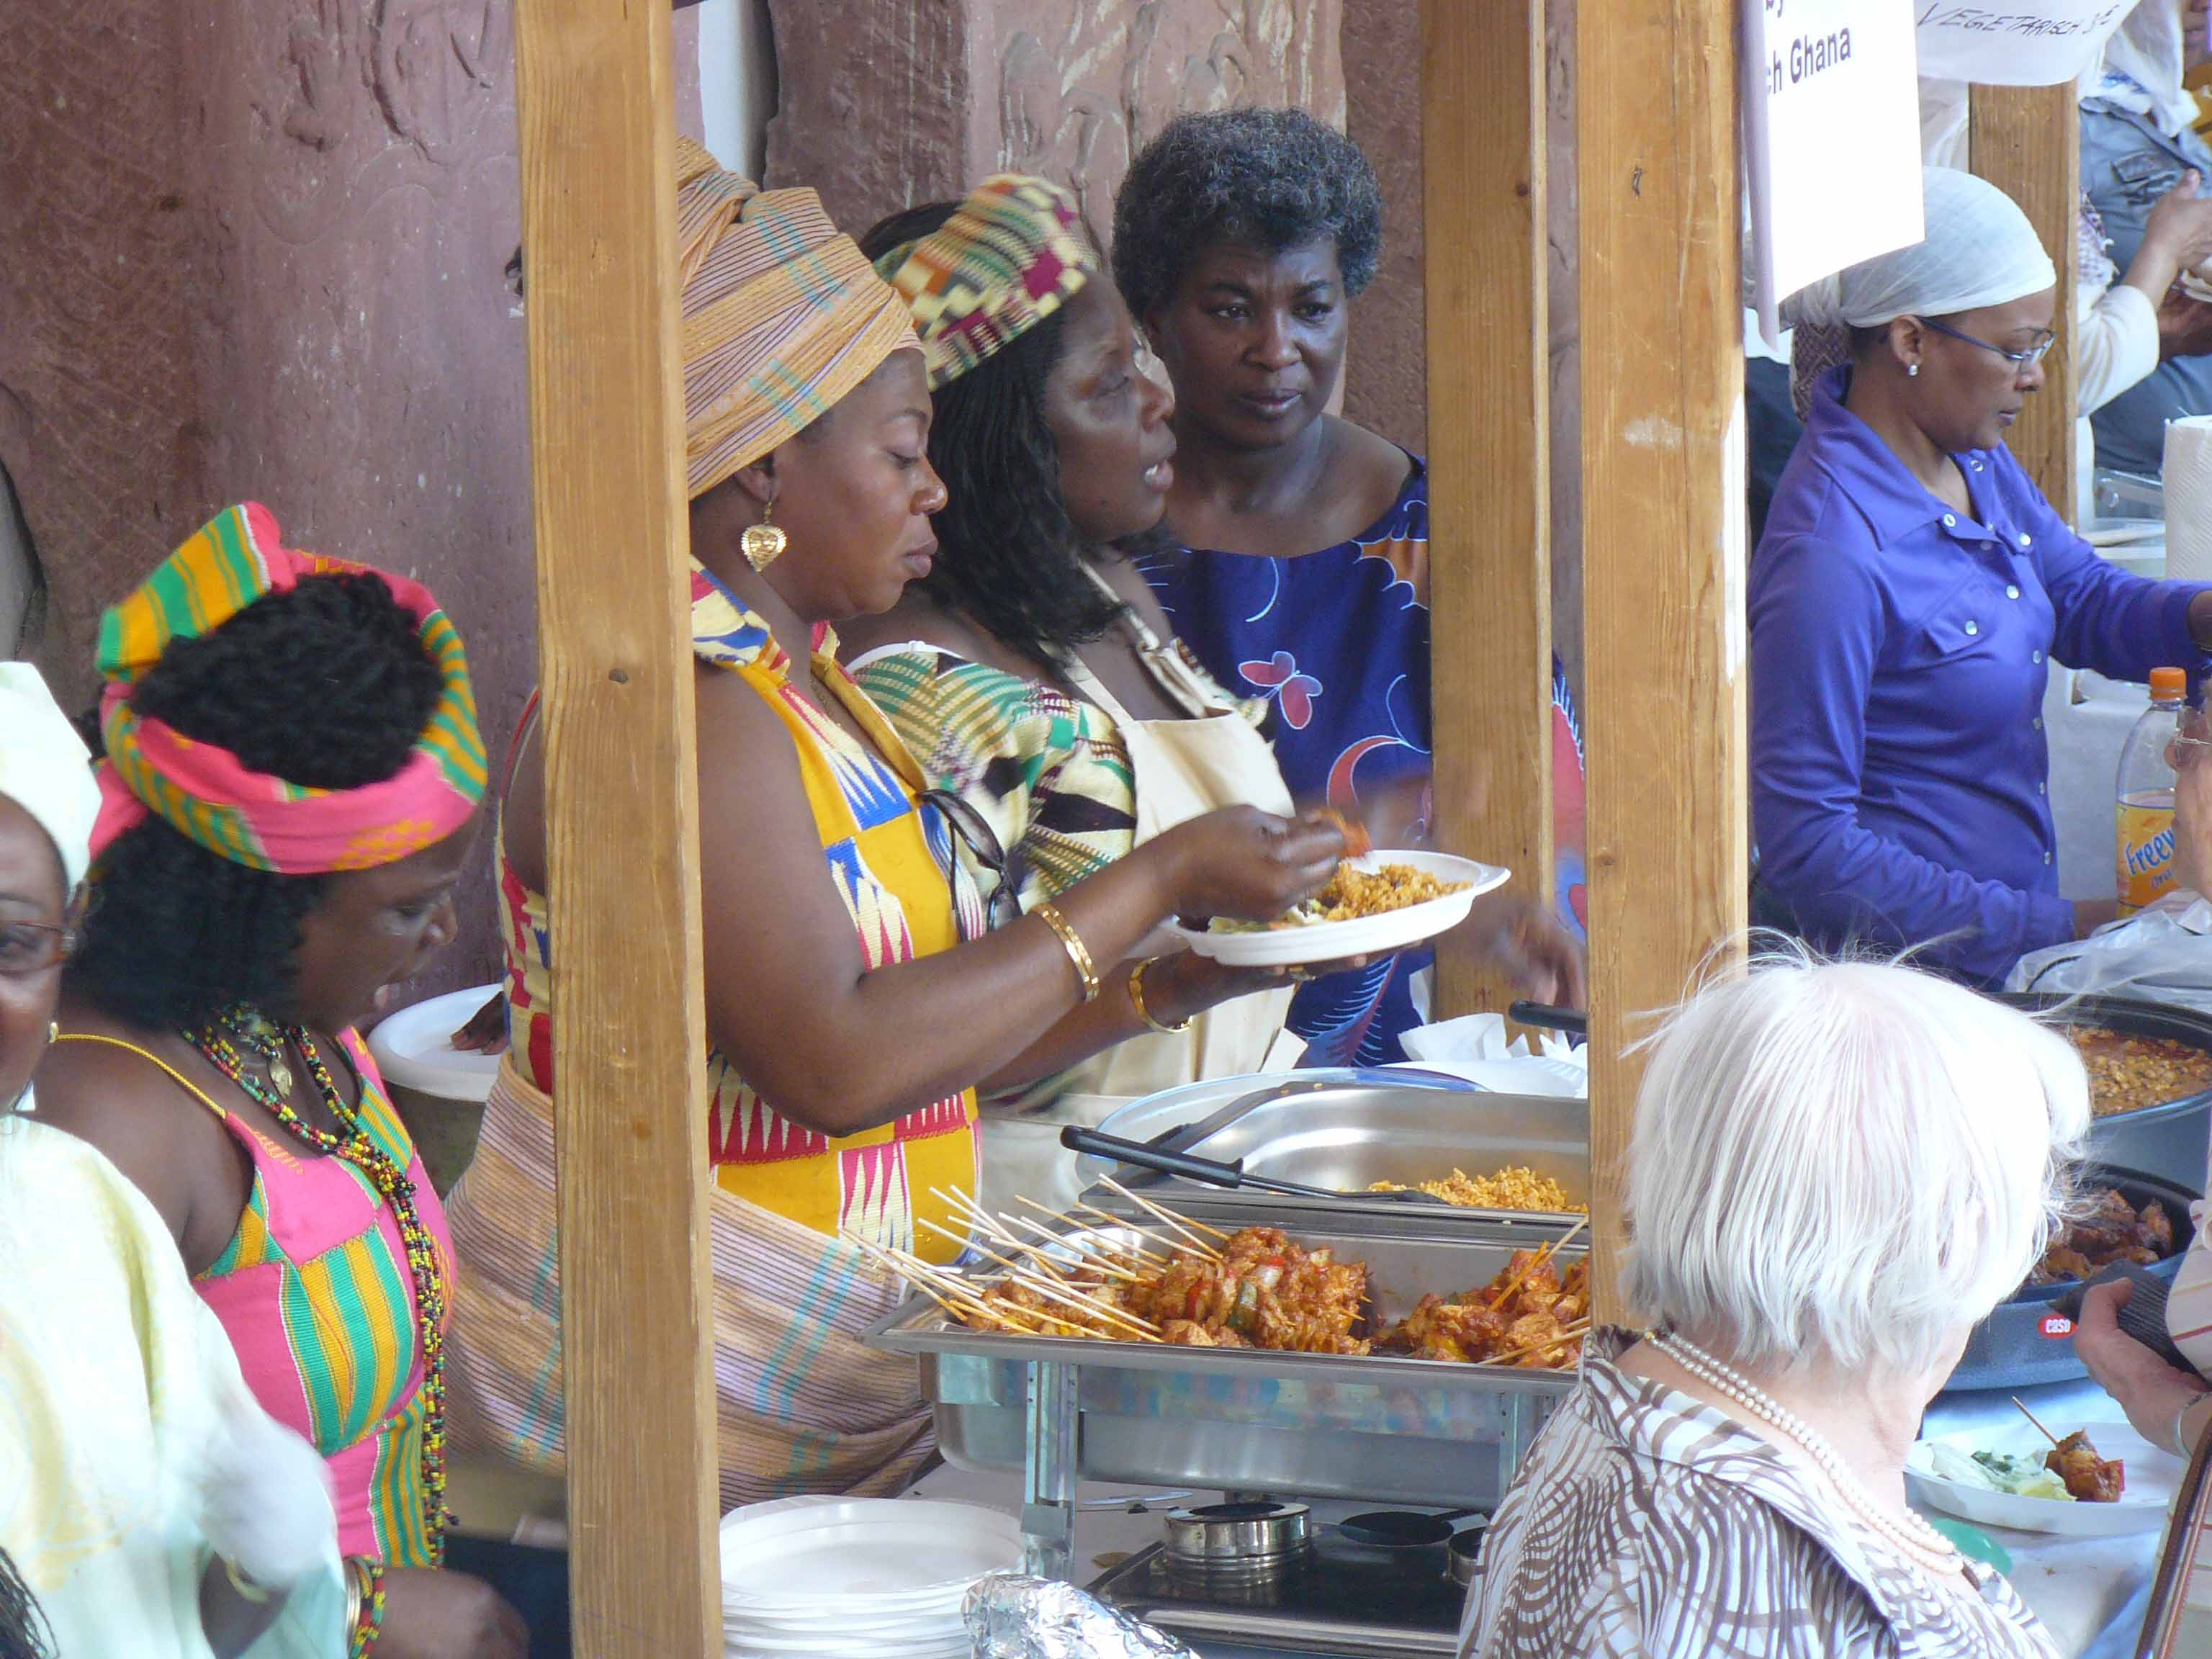 Selling ghanaian dishes at the International Pentecostal Festival.